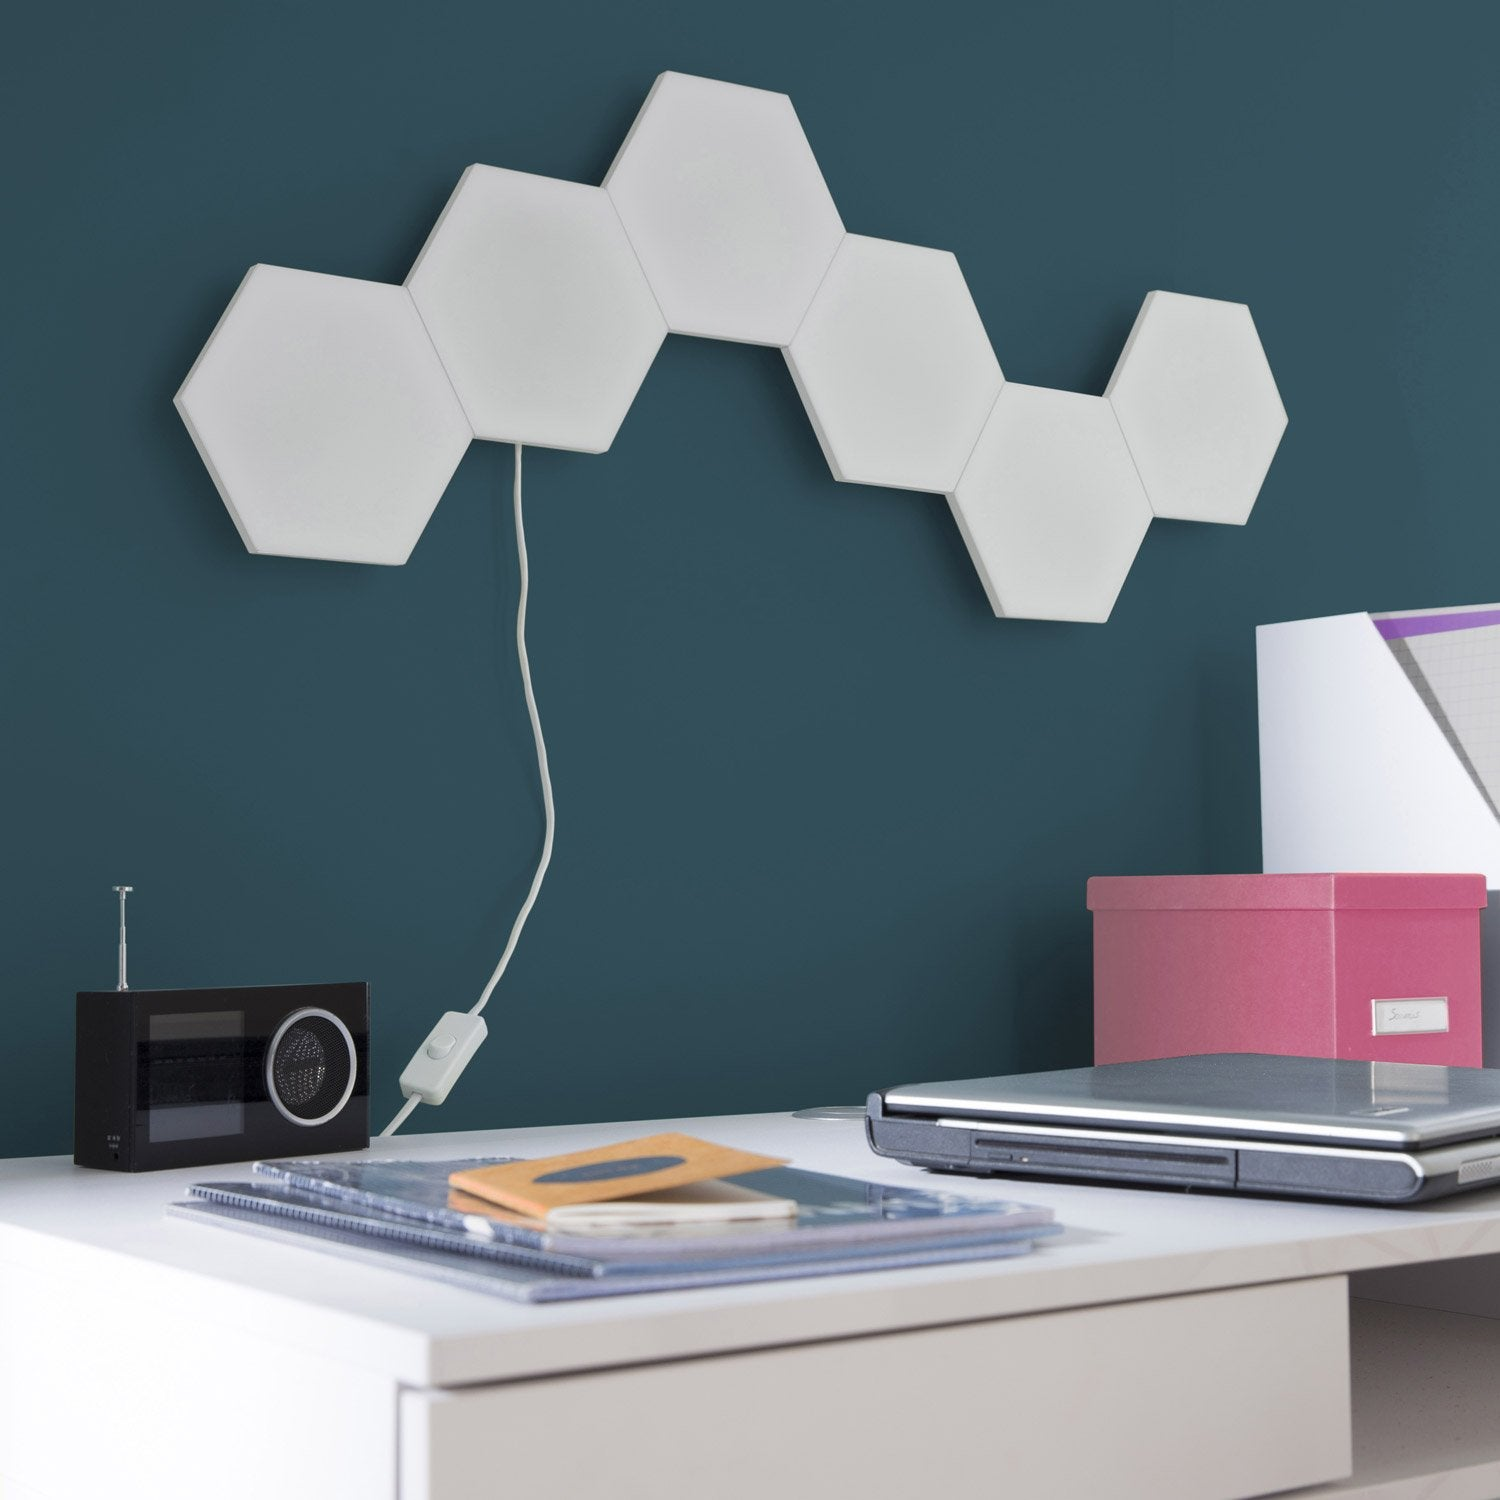 panneau led puzzle 1 x 2 9 w plastique blanc inspire leroy merlin. Black Bedroom Furniture Sets. Home Design Ideas